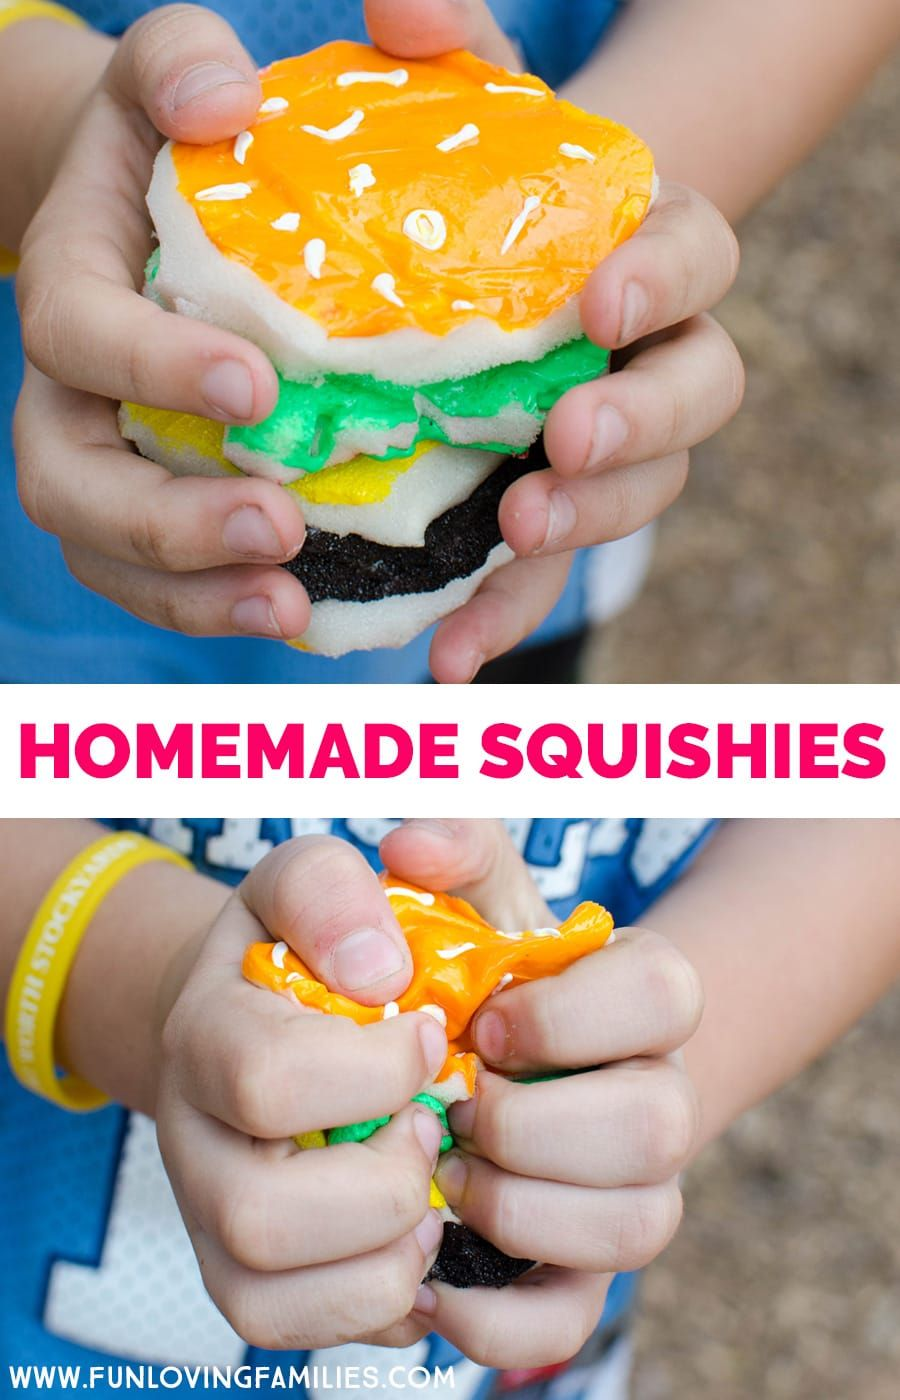 50+ Fun Crafts for Tweens and Teens: Ultimate List That Will Keep Them Busy for Hours - Fun Loving Families